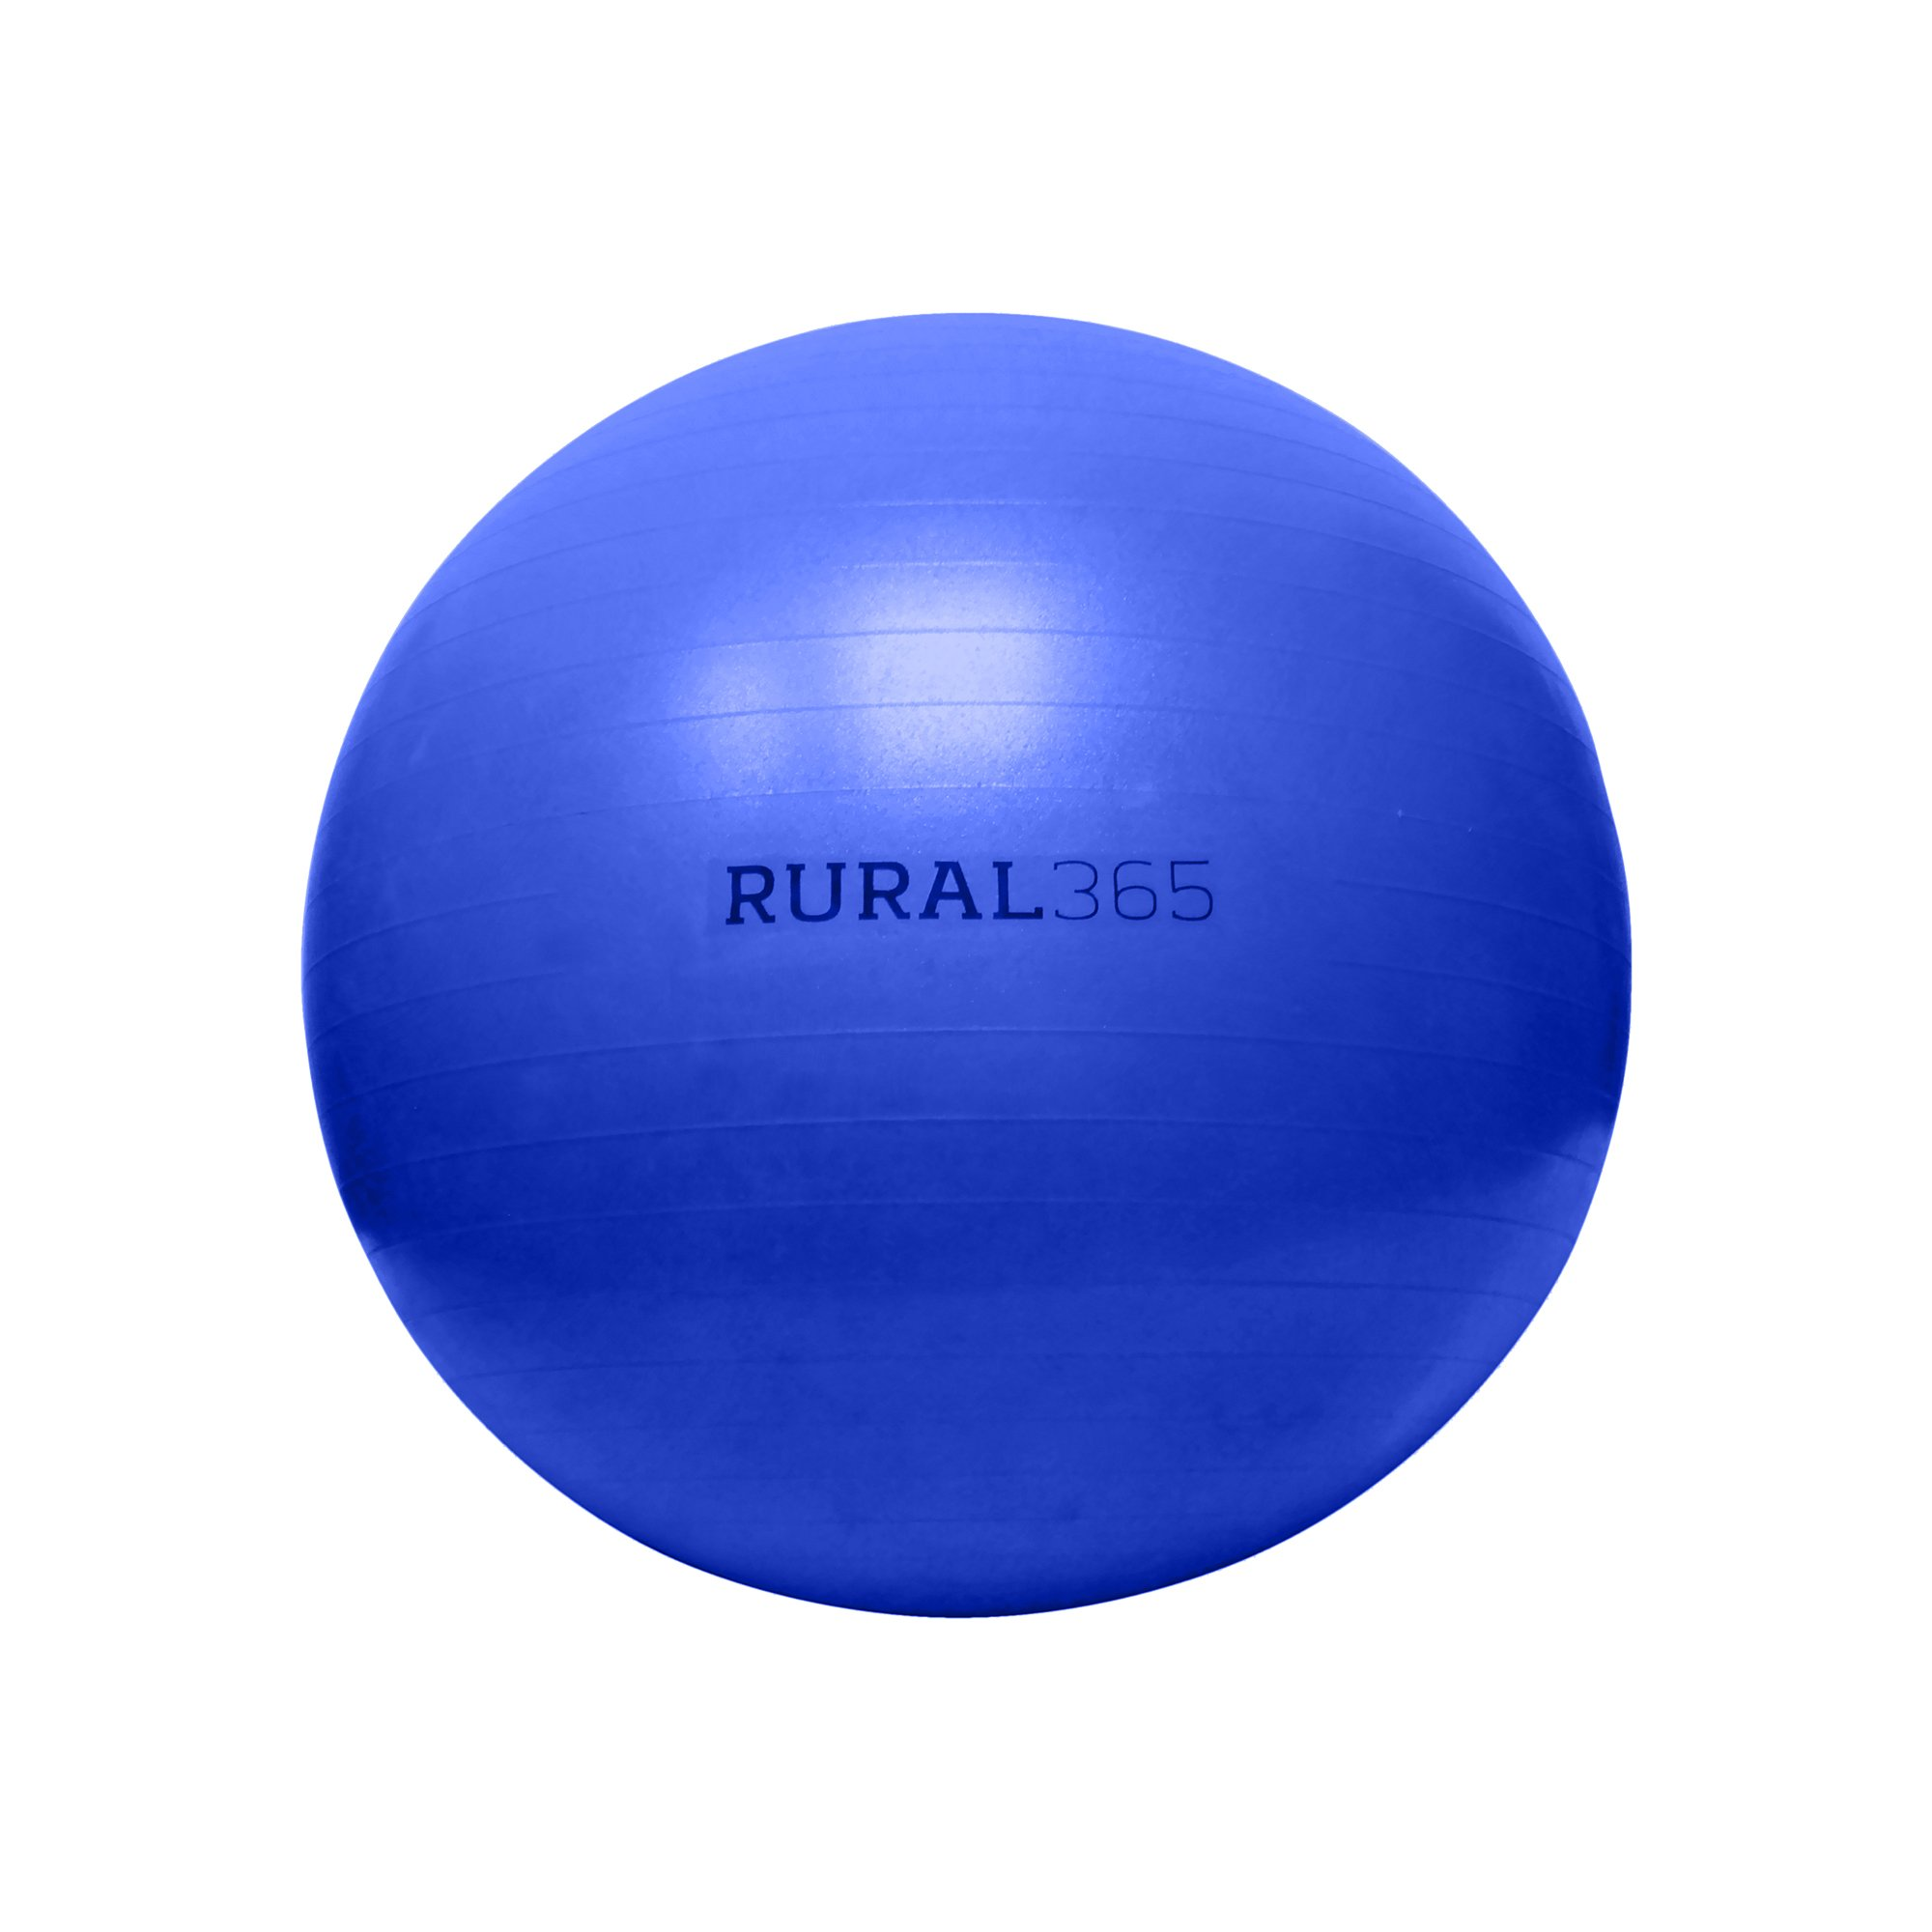 Rural365 Large Horse Ball Toy in Blue, 40'' Inch Ball Anti-Burst Giant Horse Ball - Horse Soccer Ball, Pump Included by Rural365